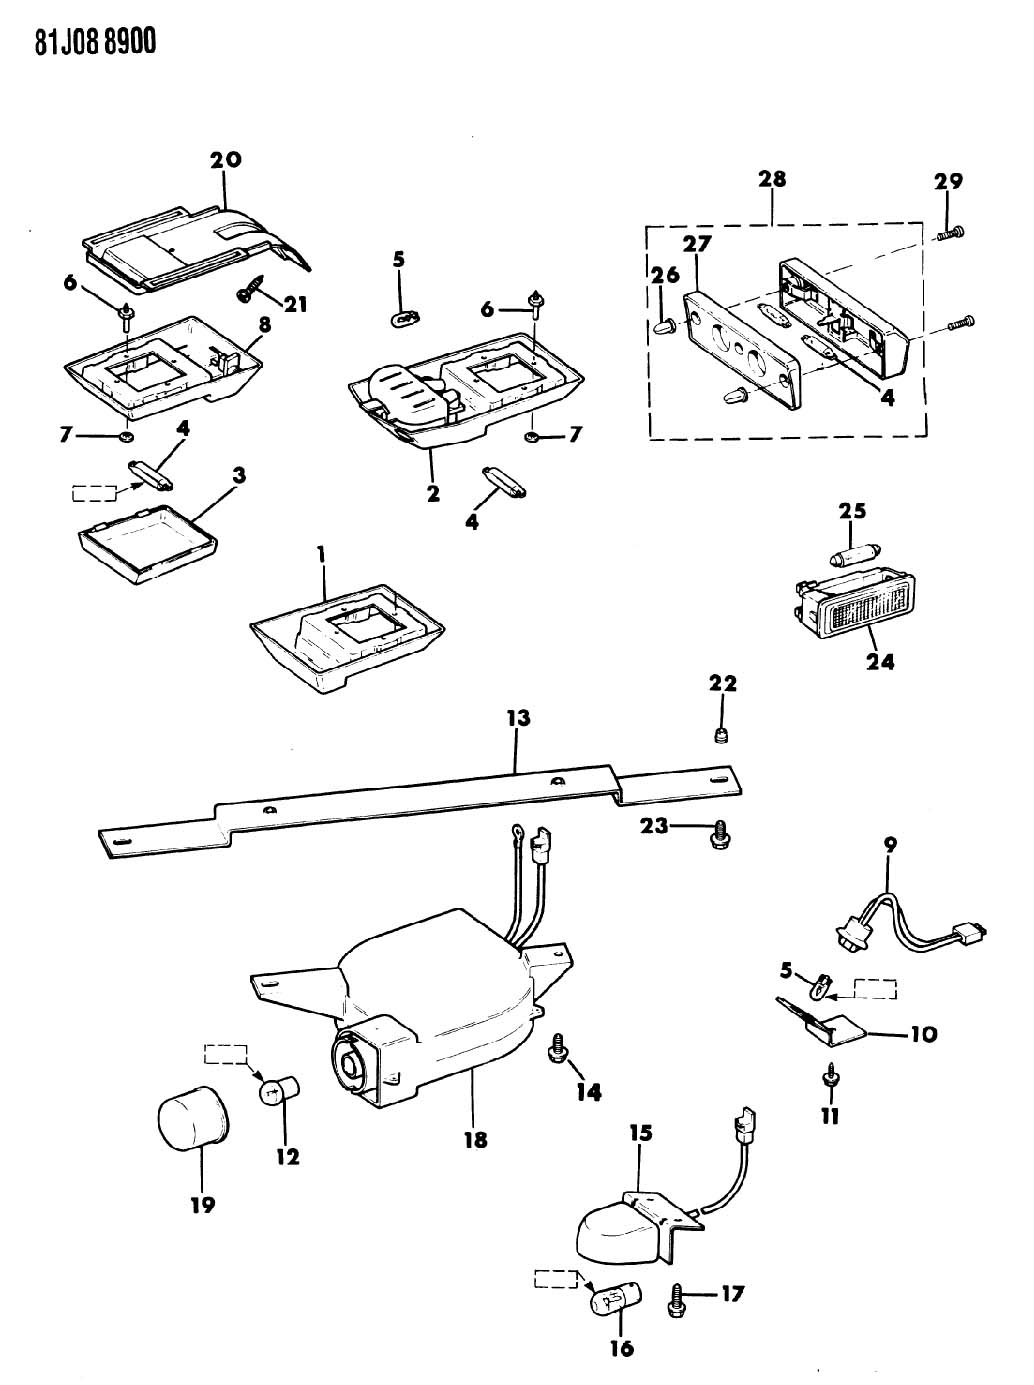 Jeep Comanche Hood Latch Diagram, Jeep, Free Engine Image